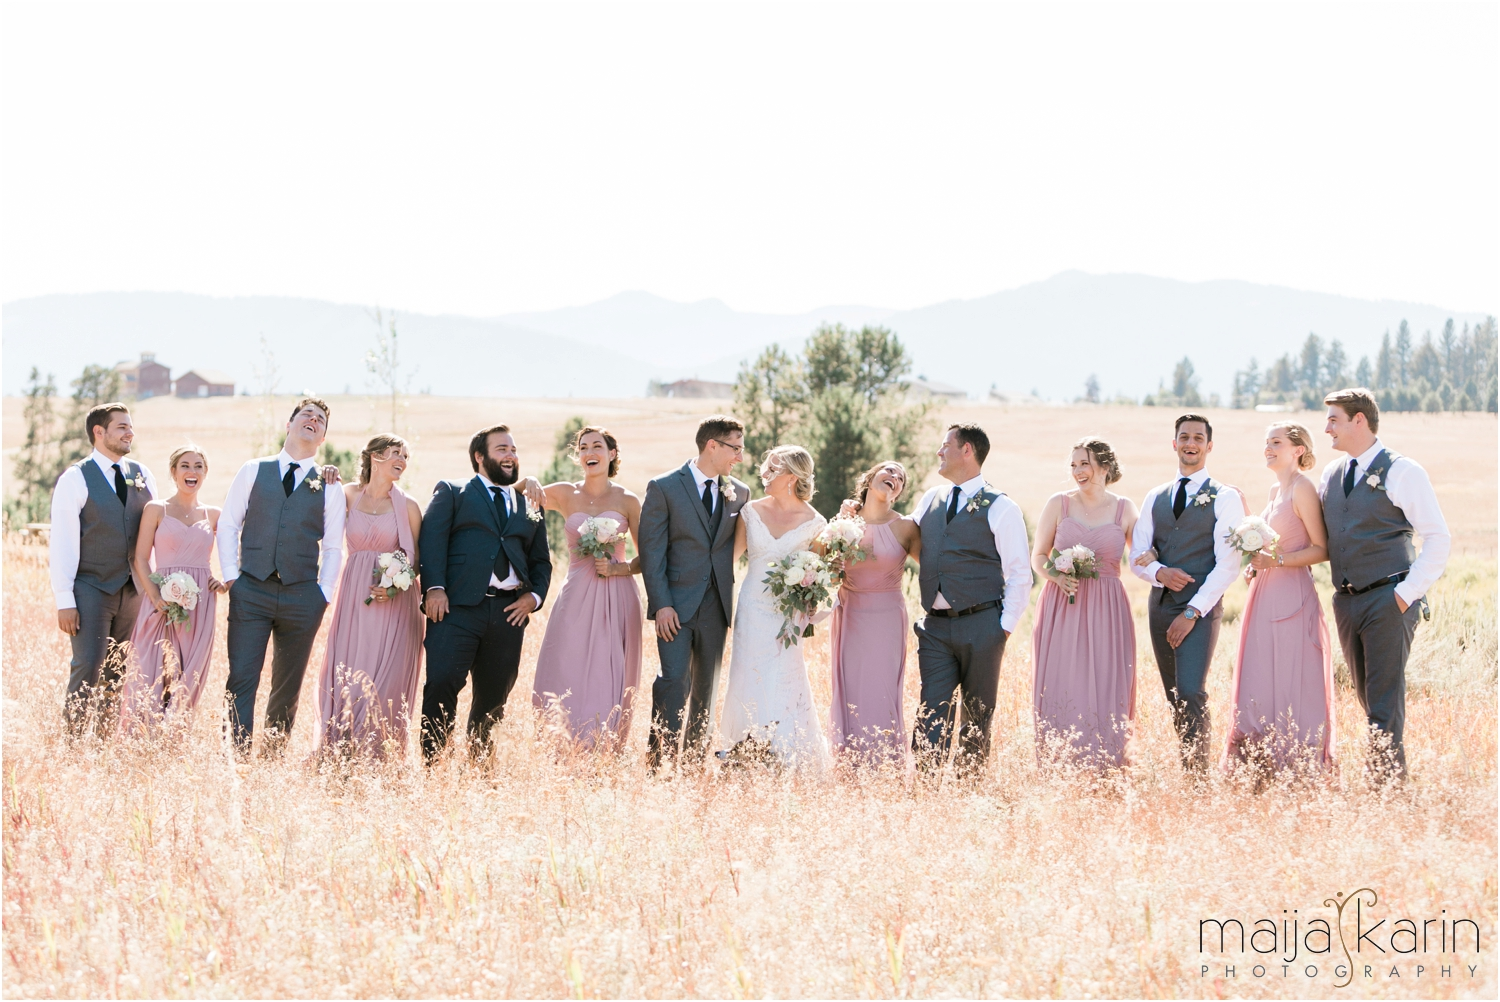 McCall-Idaho-Wedding-Maija-Karin-Photography_0051.jpg